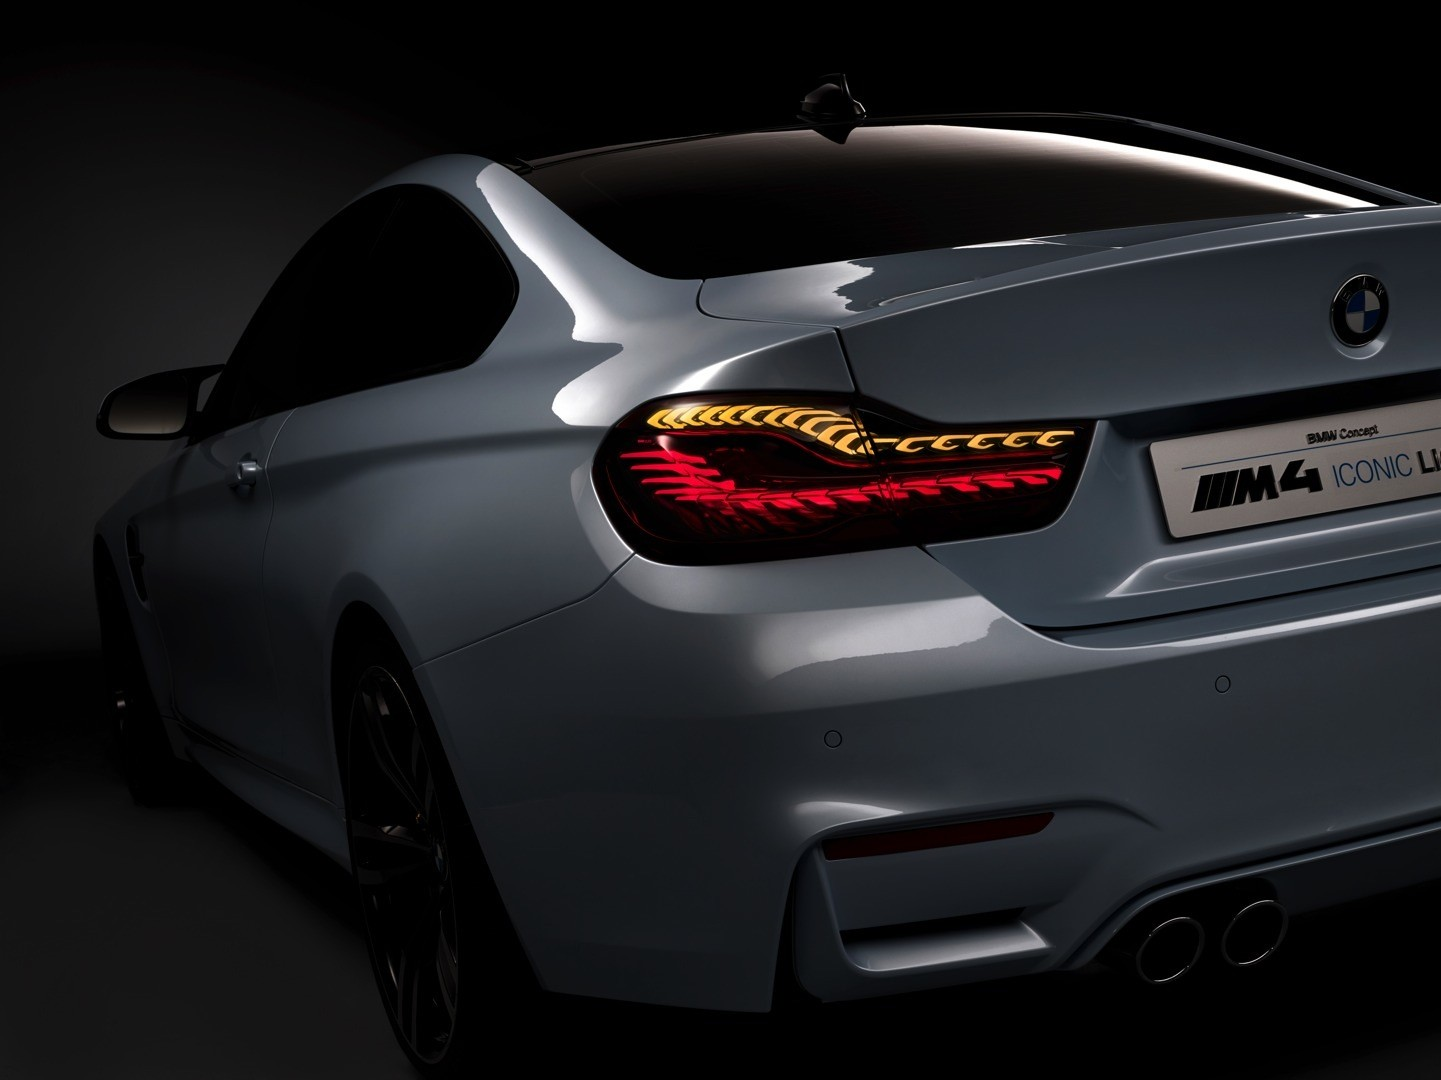 bmw-m4-concept-iconic-lights-brings-intelligent-laser-beams-and-oleds-at-ces-photo-gallery_2